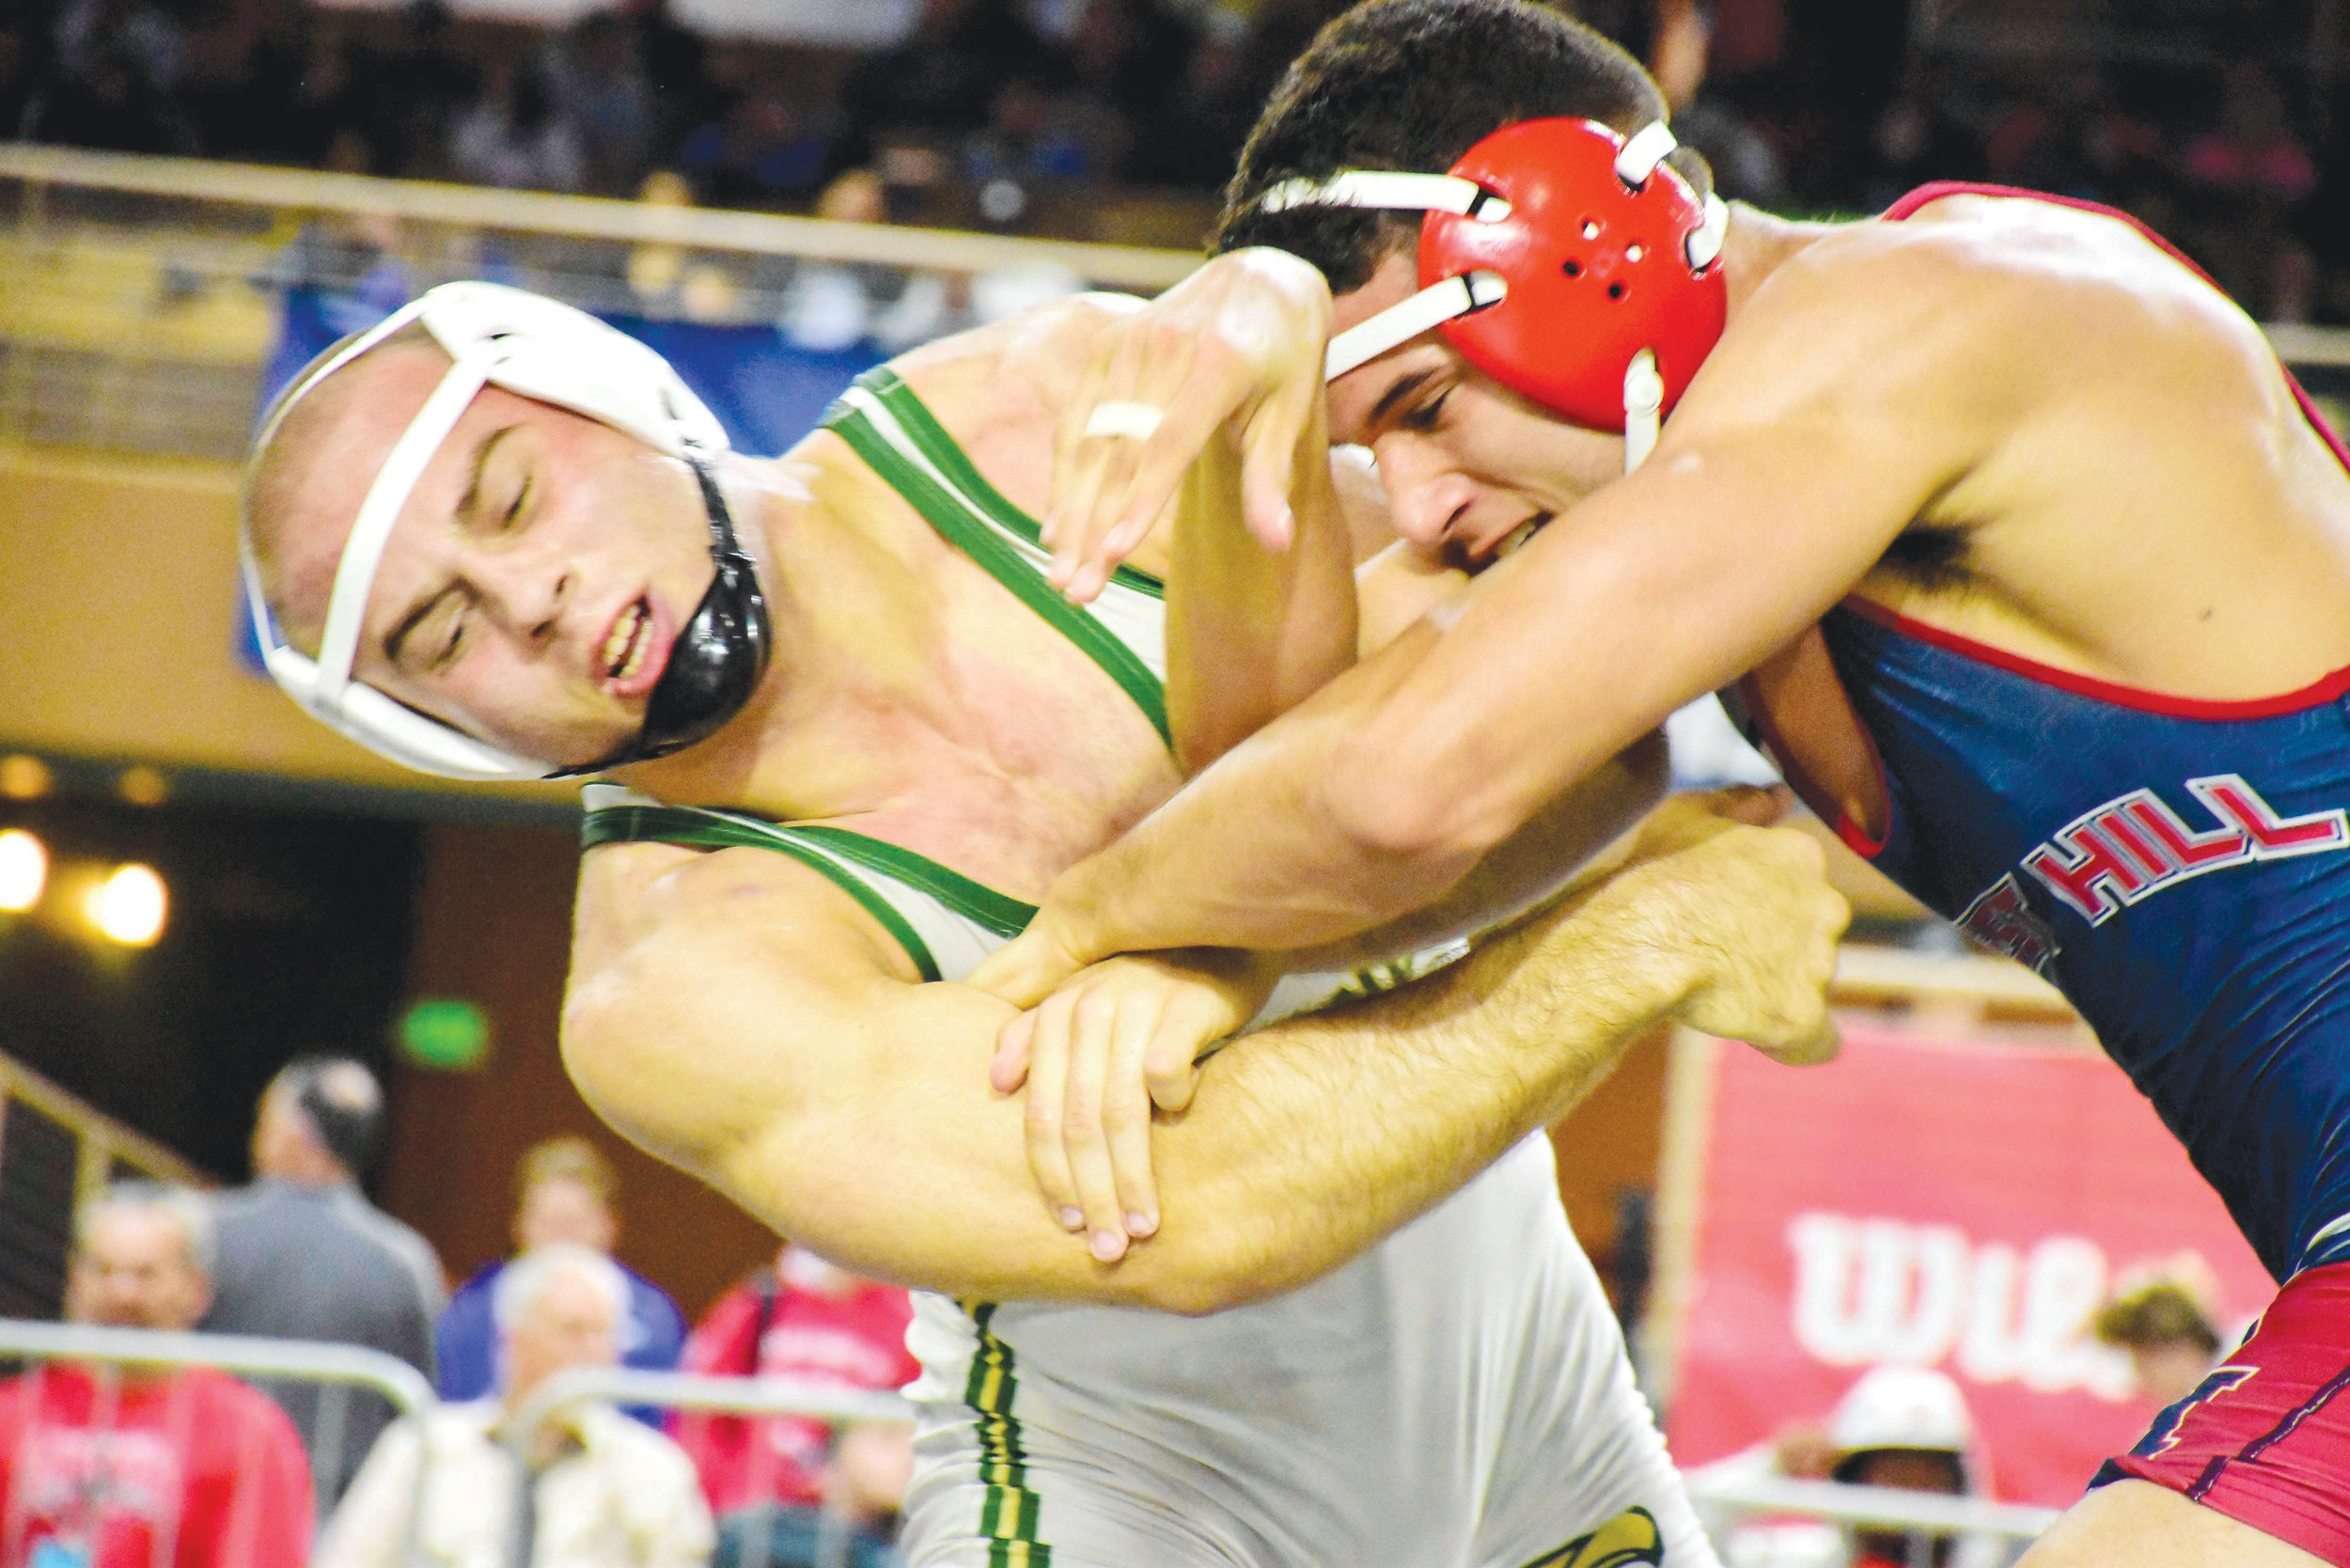 Fleming Island High's first wrestling gold medalist, Jason Davis, left, made preseason transition to lighter weight that eventually paid dividends.